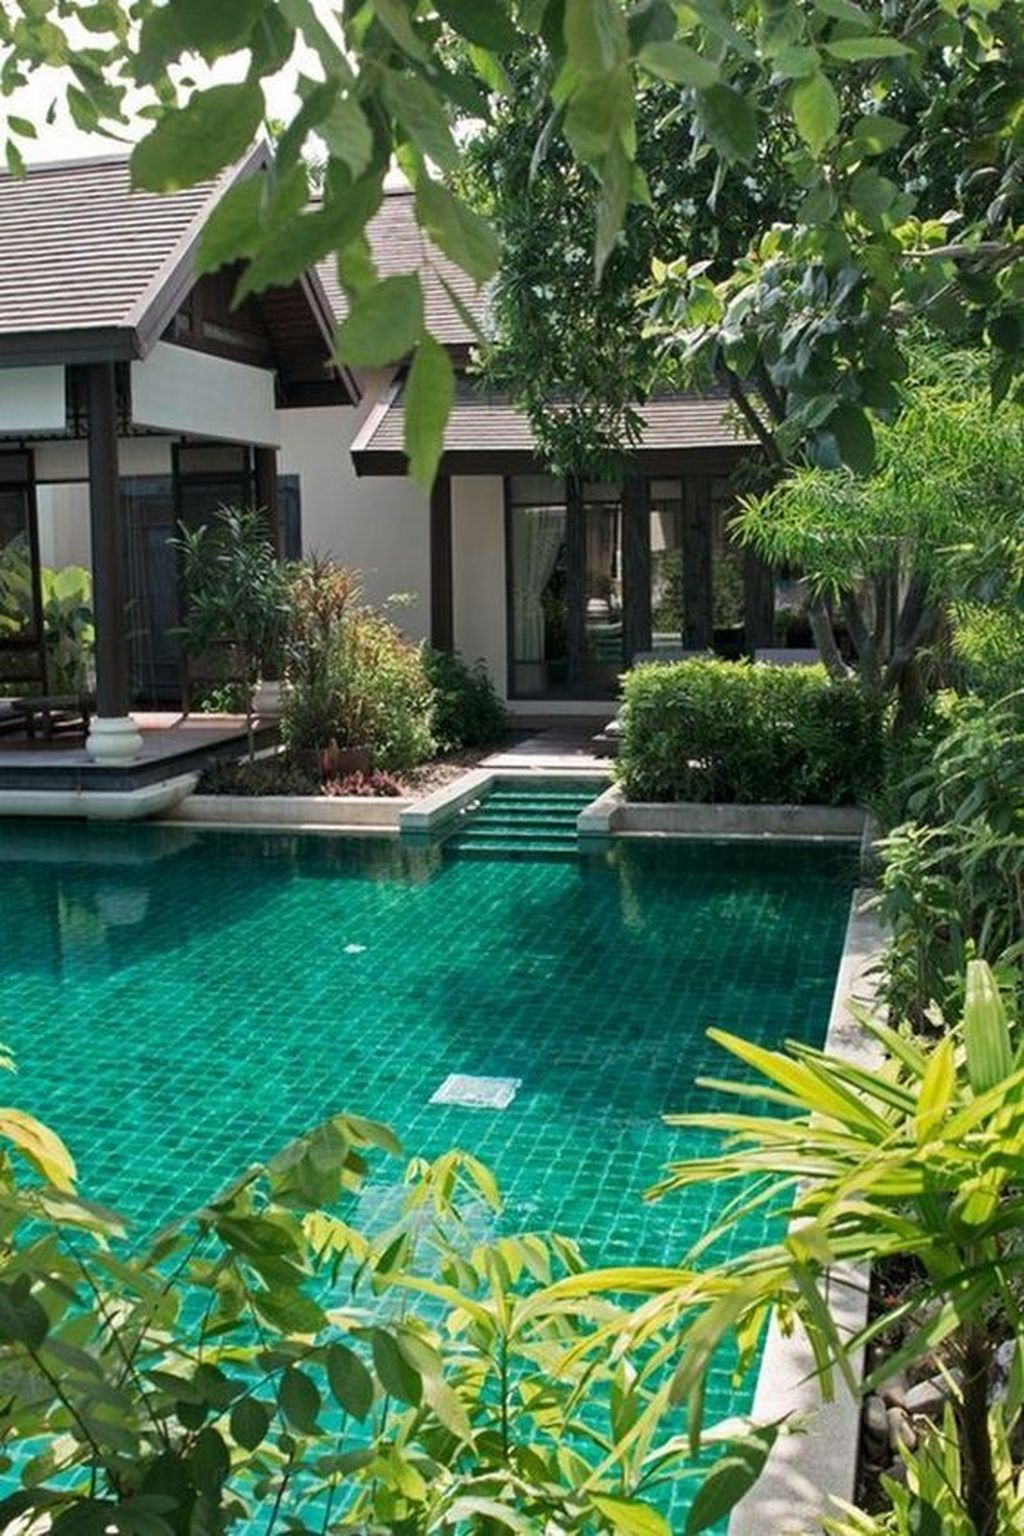 Fabulous Backyard Pool Landscaping Ideas You Never Seen Before 09